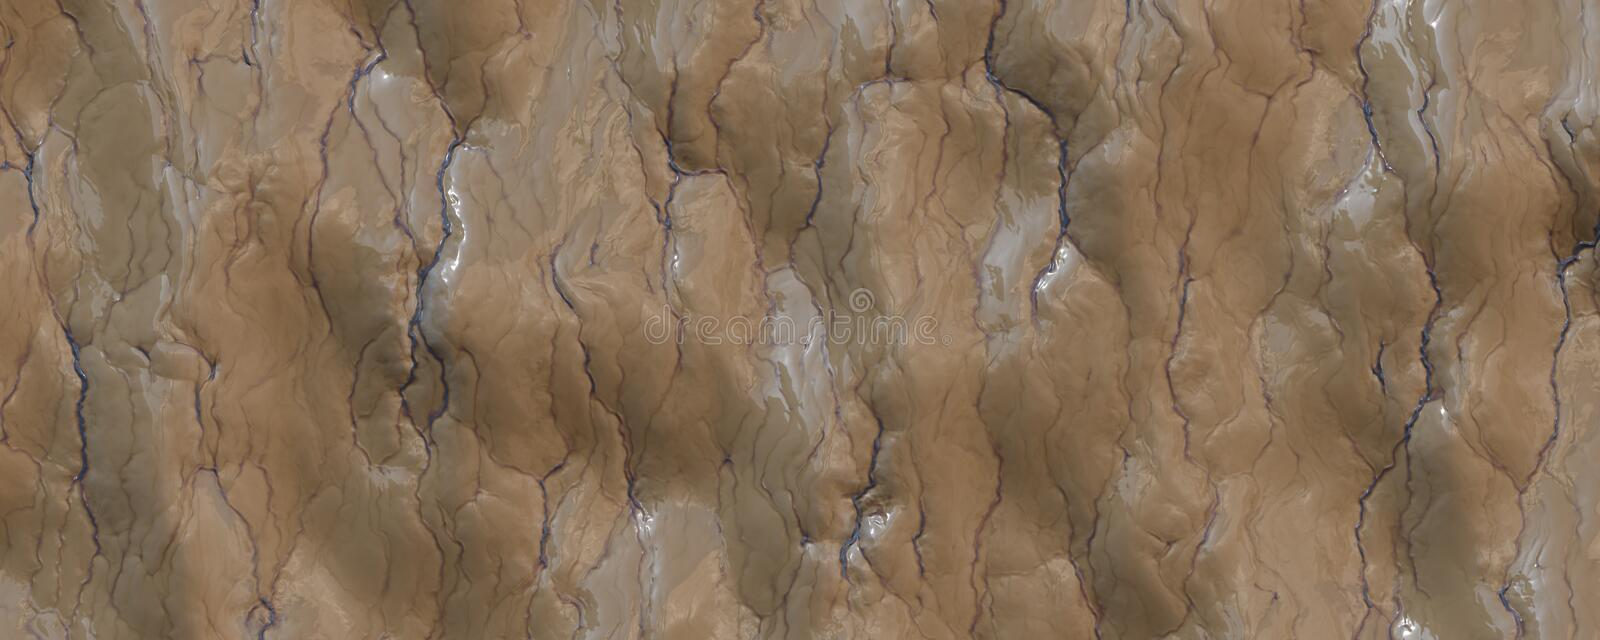 Close up rotten spleen texture background royalty free illustration